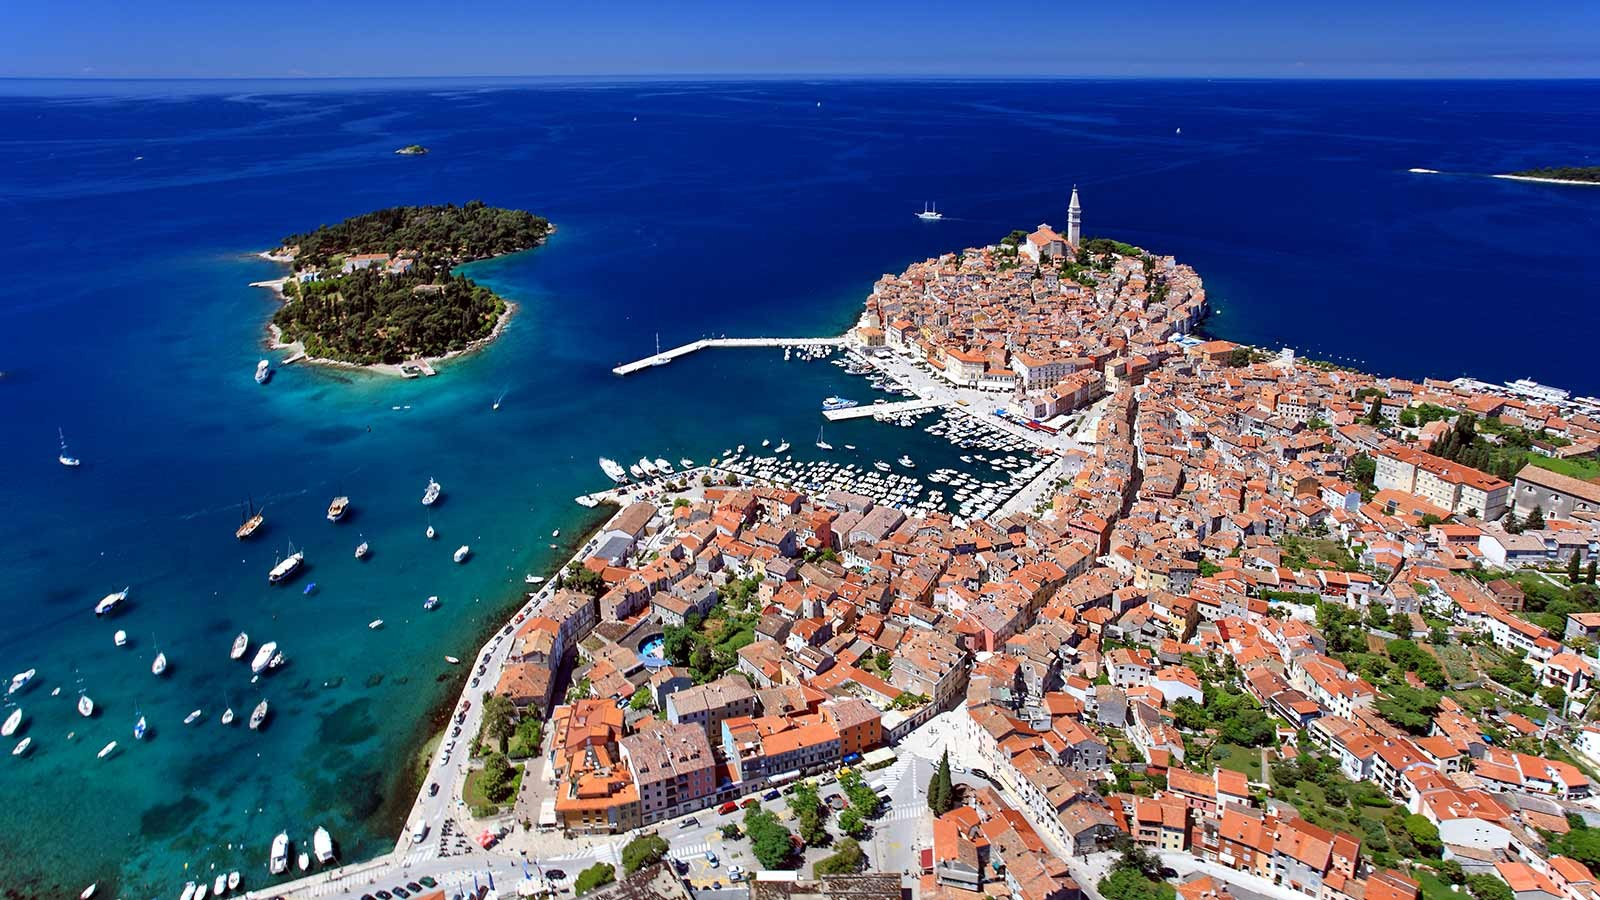 Tourism flourishes in Croatia: 20% increase in arrivals already